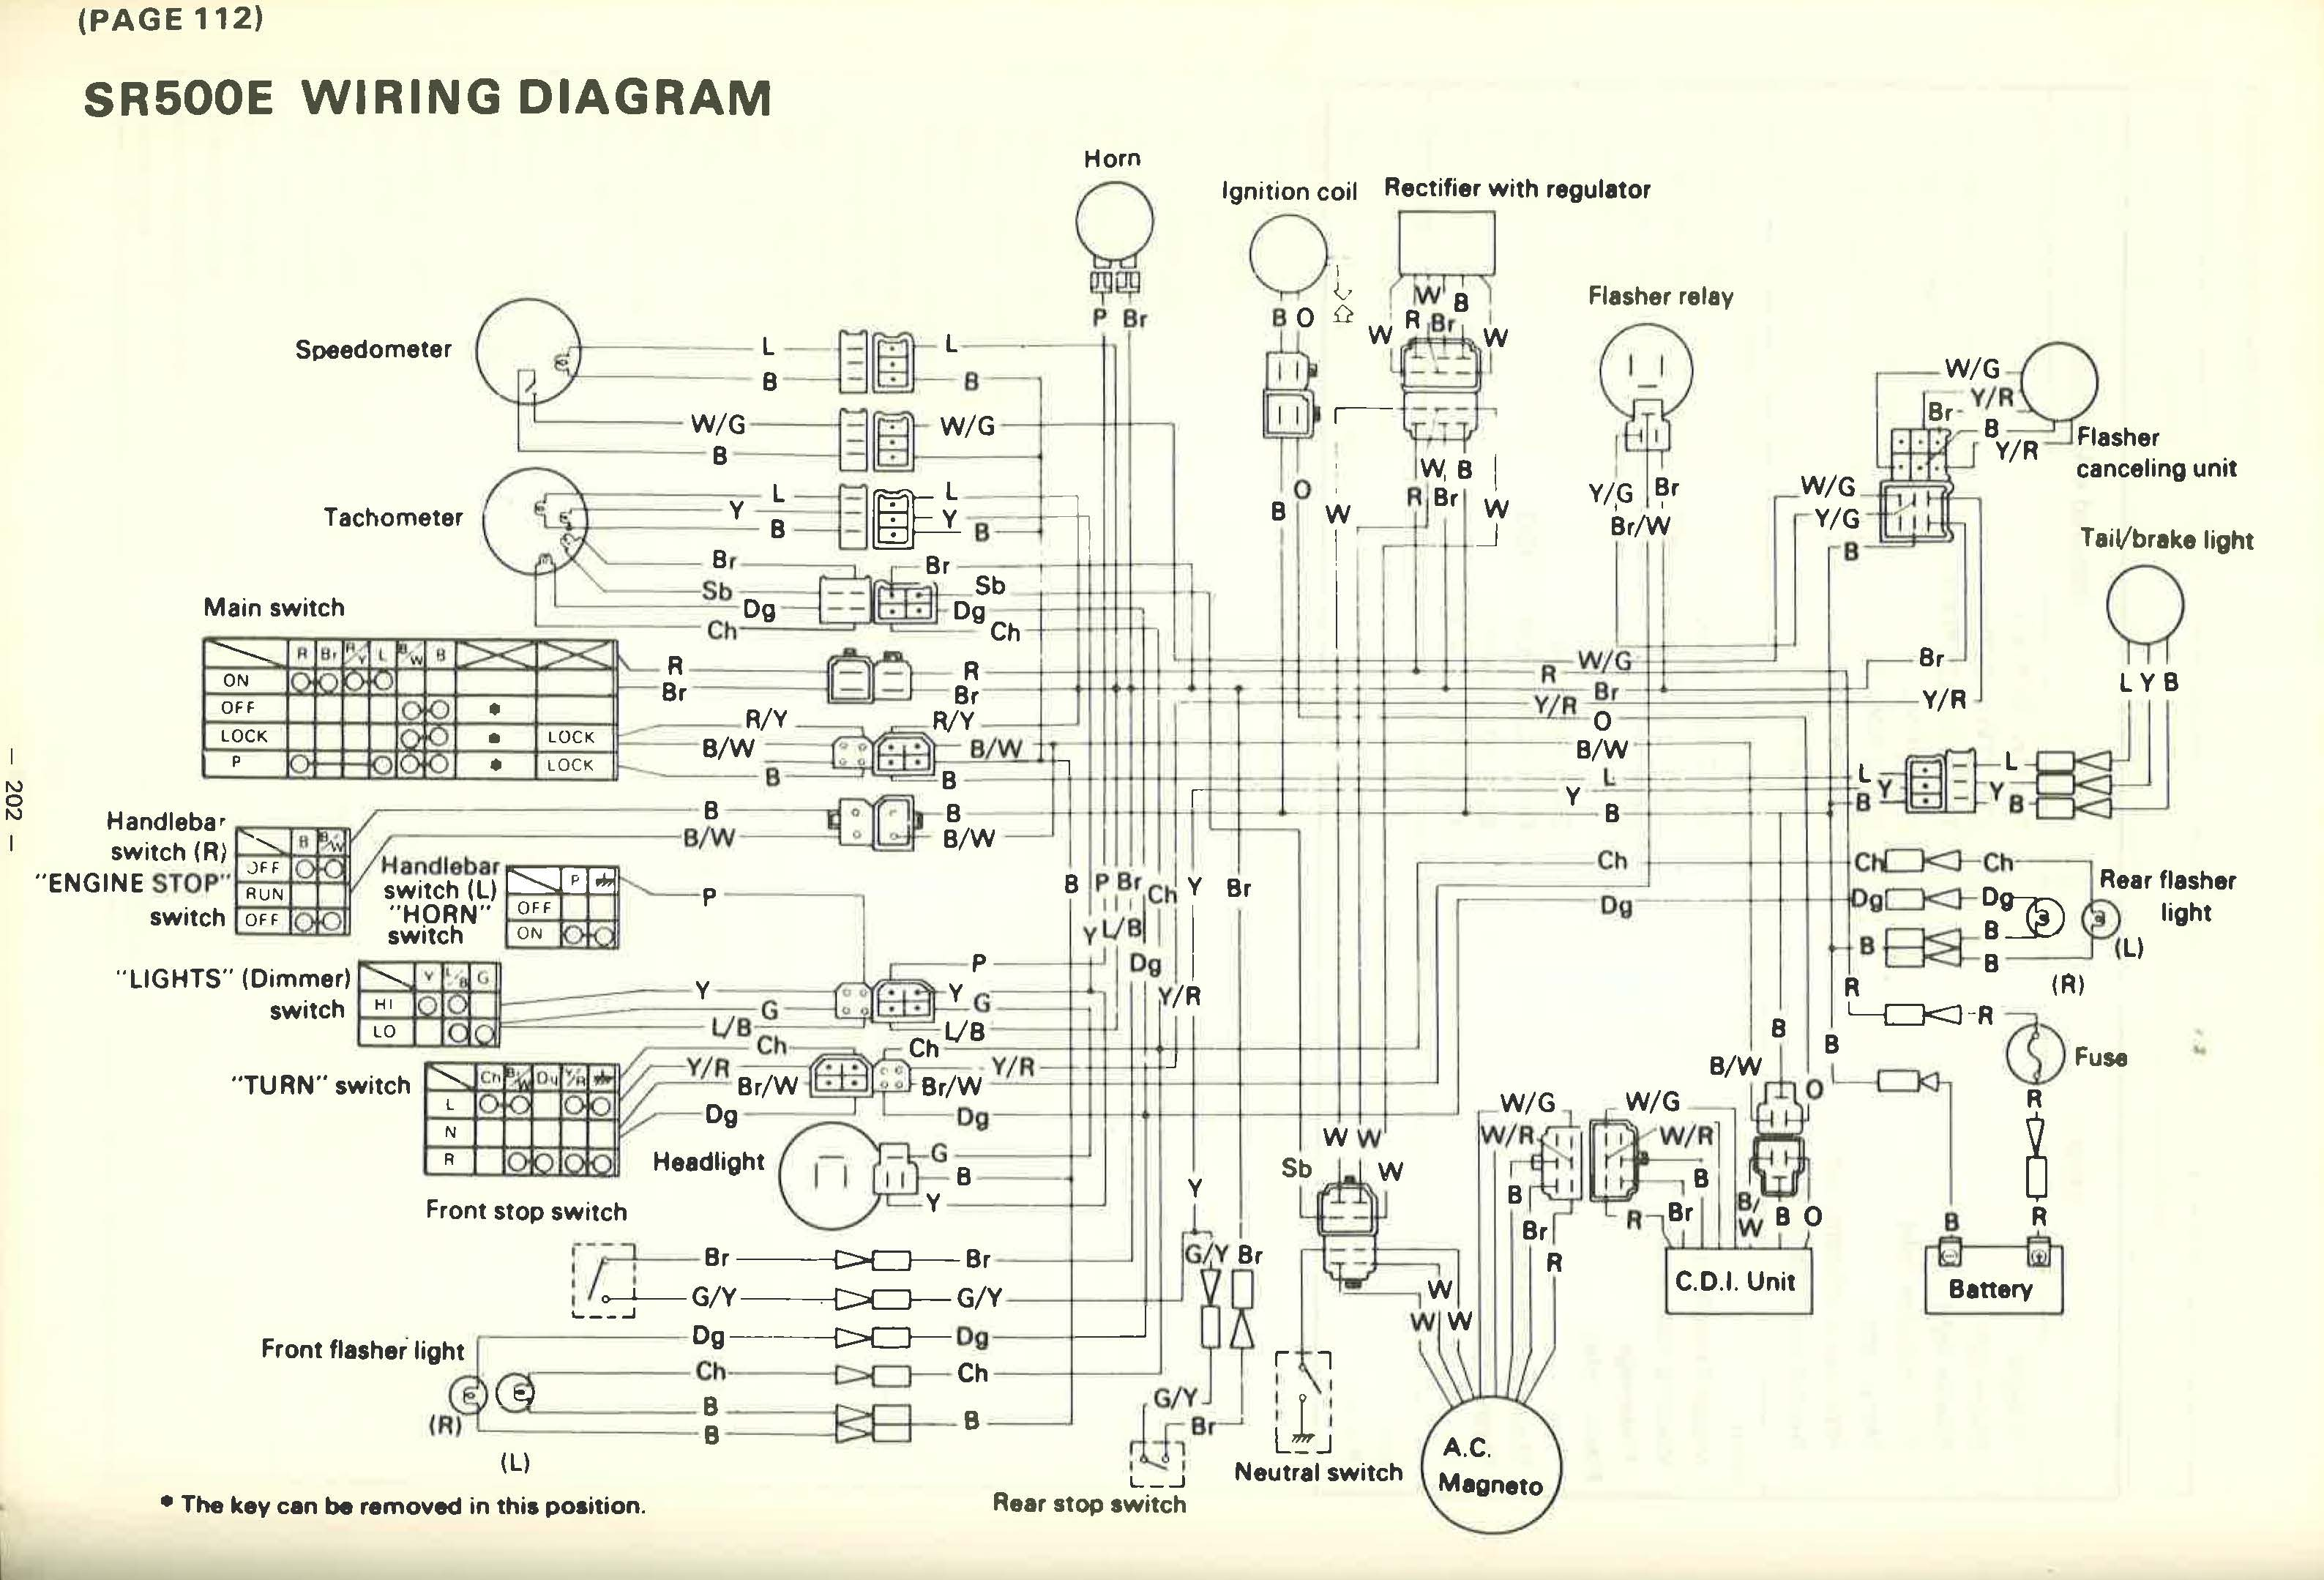 Aermacchi Wiring Diagram 65 | Wiring Diagram on kindle for dummies, kindle mayday button, kindle touch schematic, kindle 2 reset button location, kindle motherboard layout, lg g2 schematic, kindle new battery, nexus 7 schematic, htc one schematic,